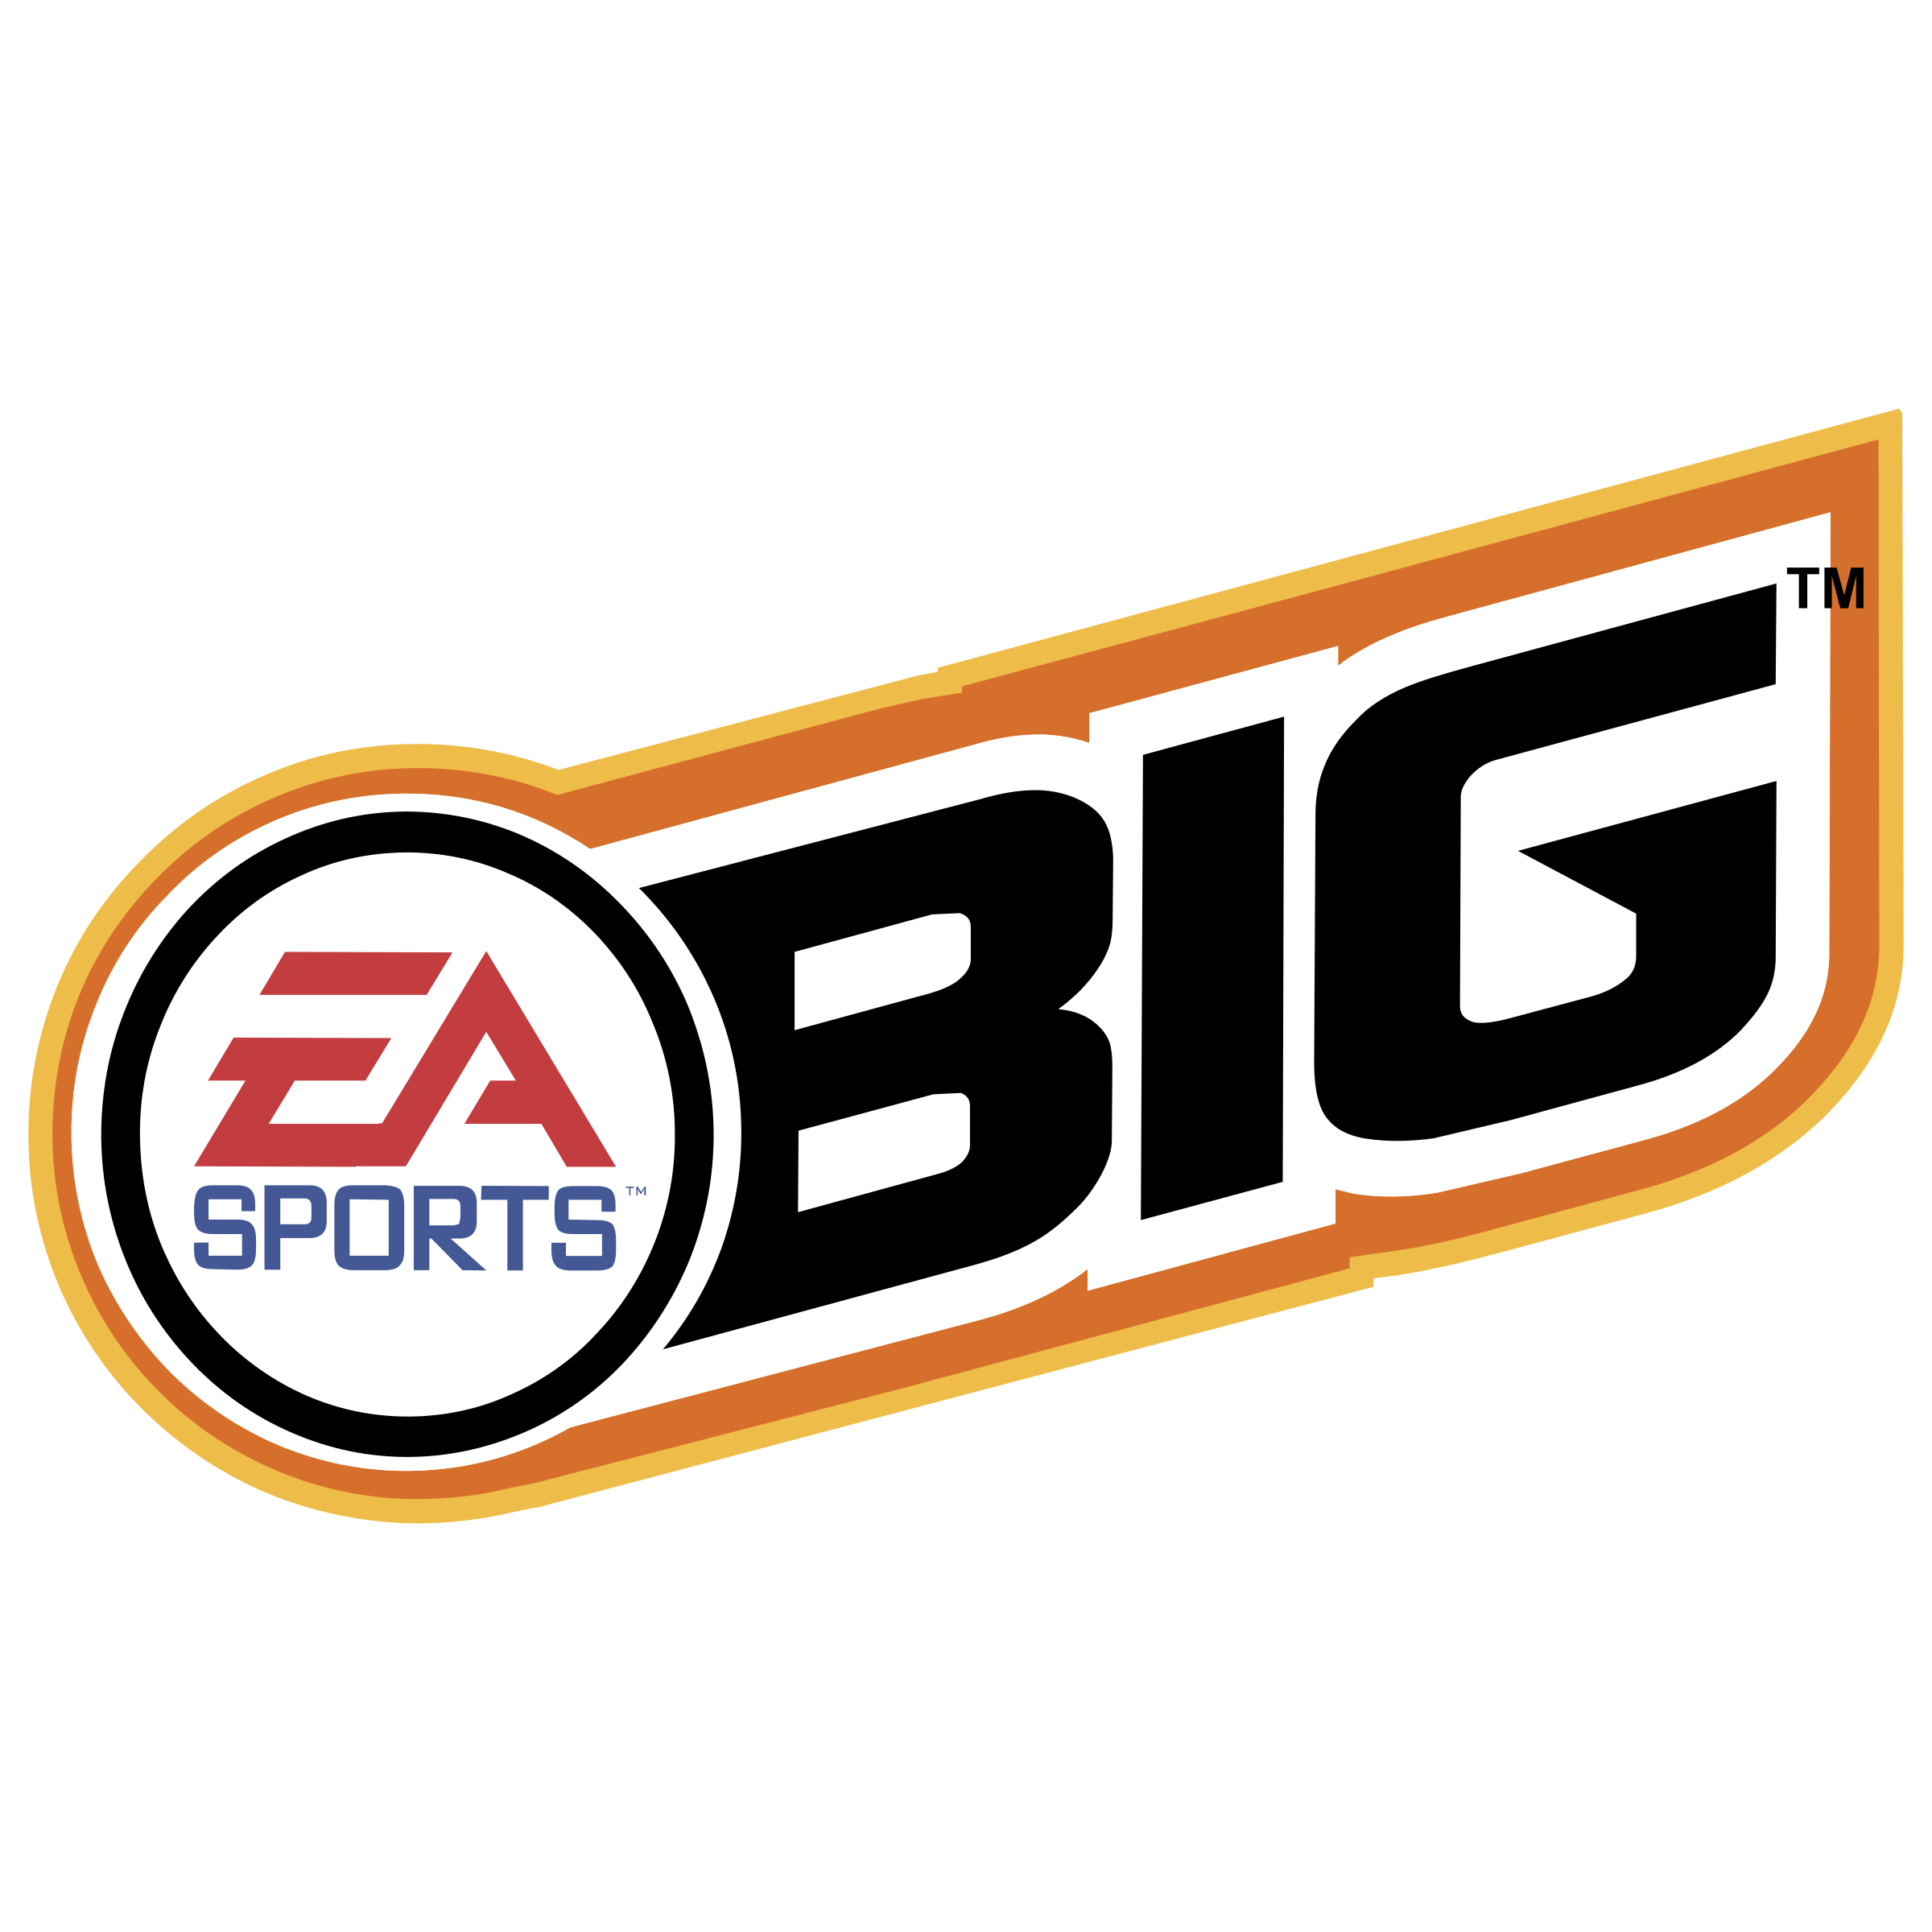 EA Sports Big Logo PNG Transparent & SVG Vector.